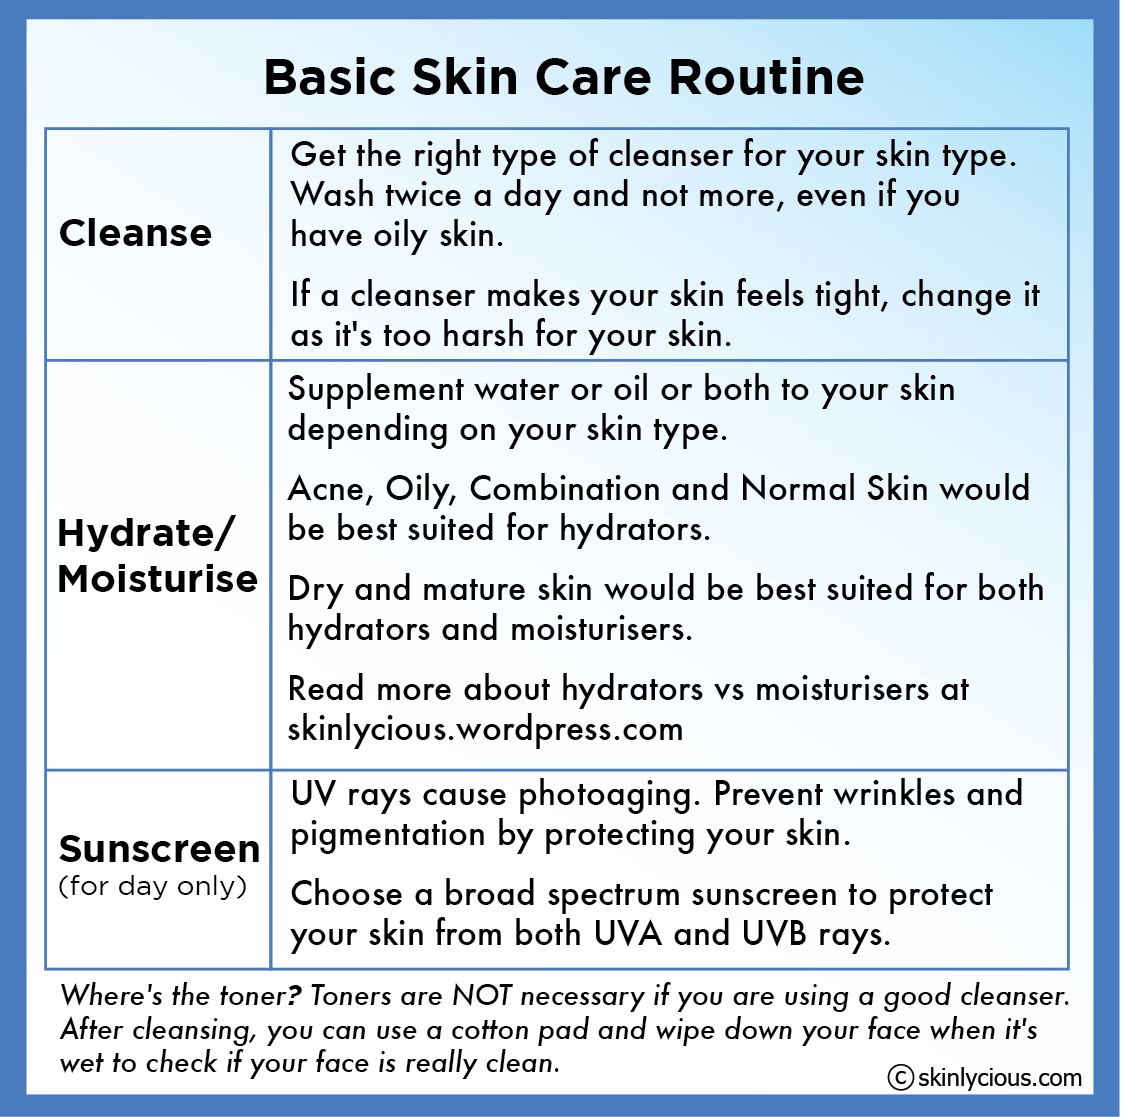 basic-skin-care-routine.png